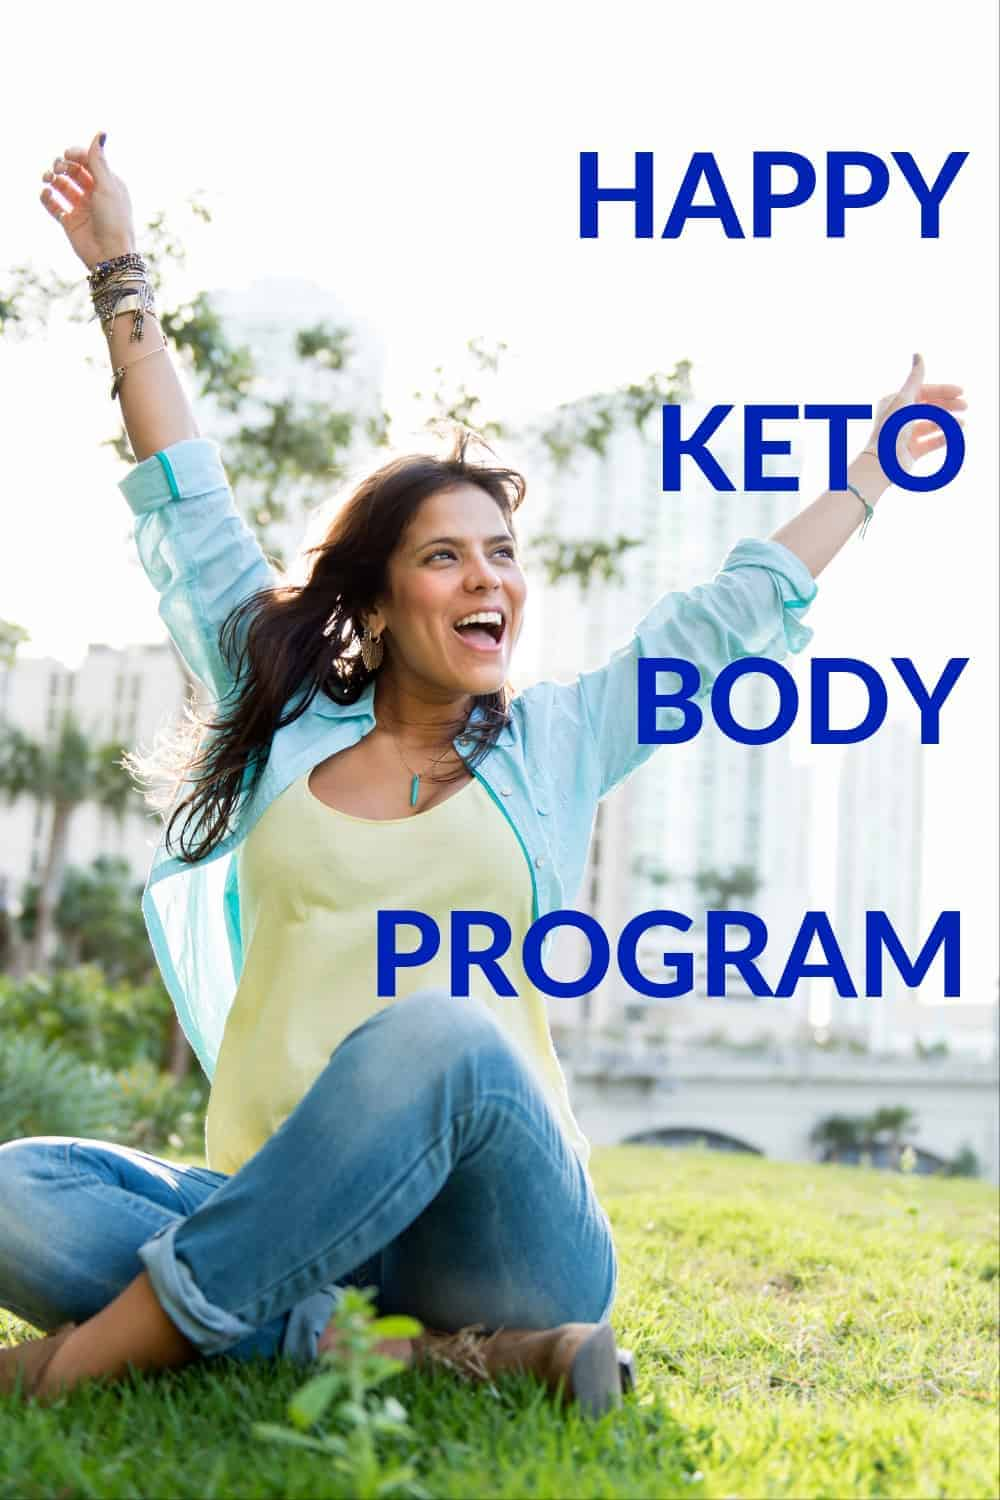 Text Happy Keto Body Program